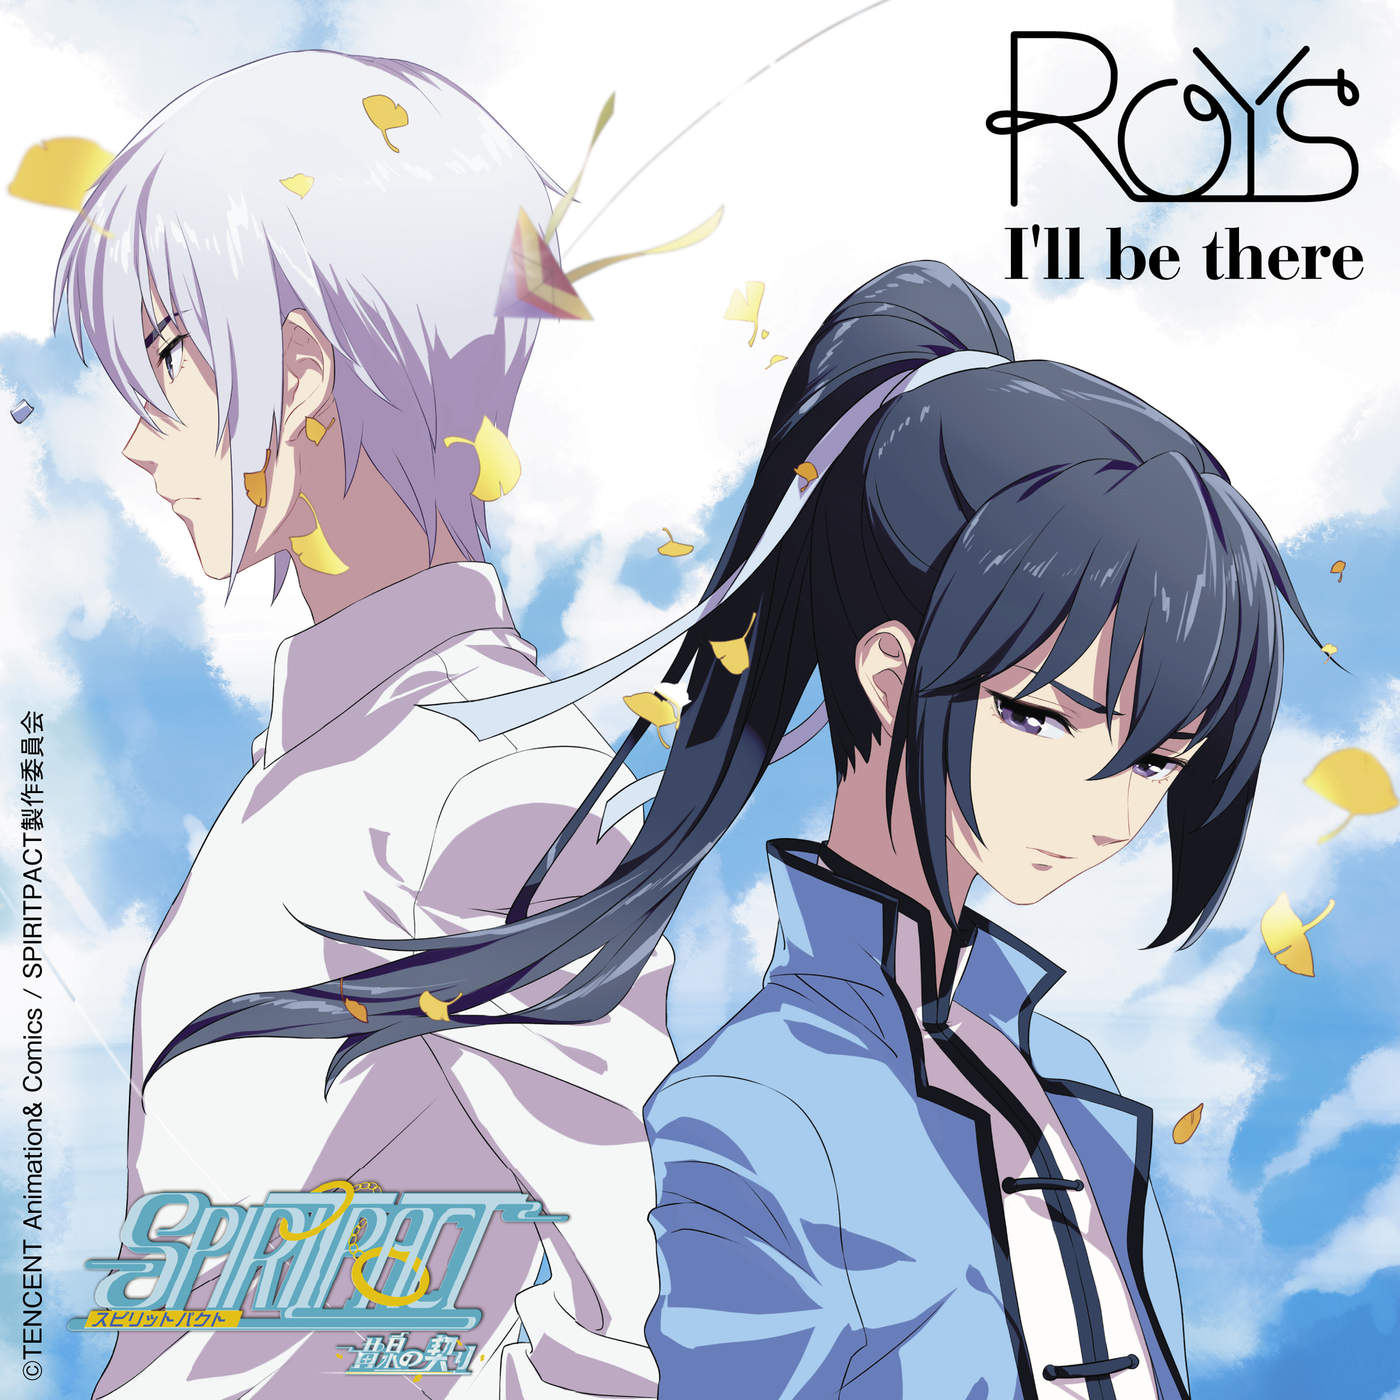 Roys – I'll be there